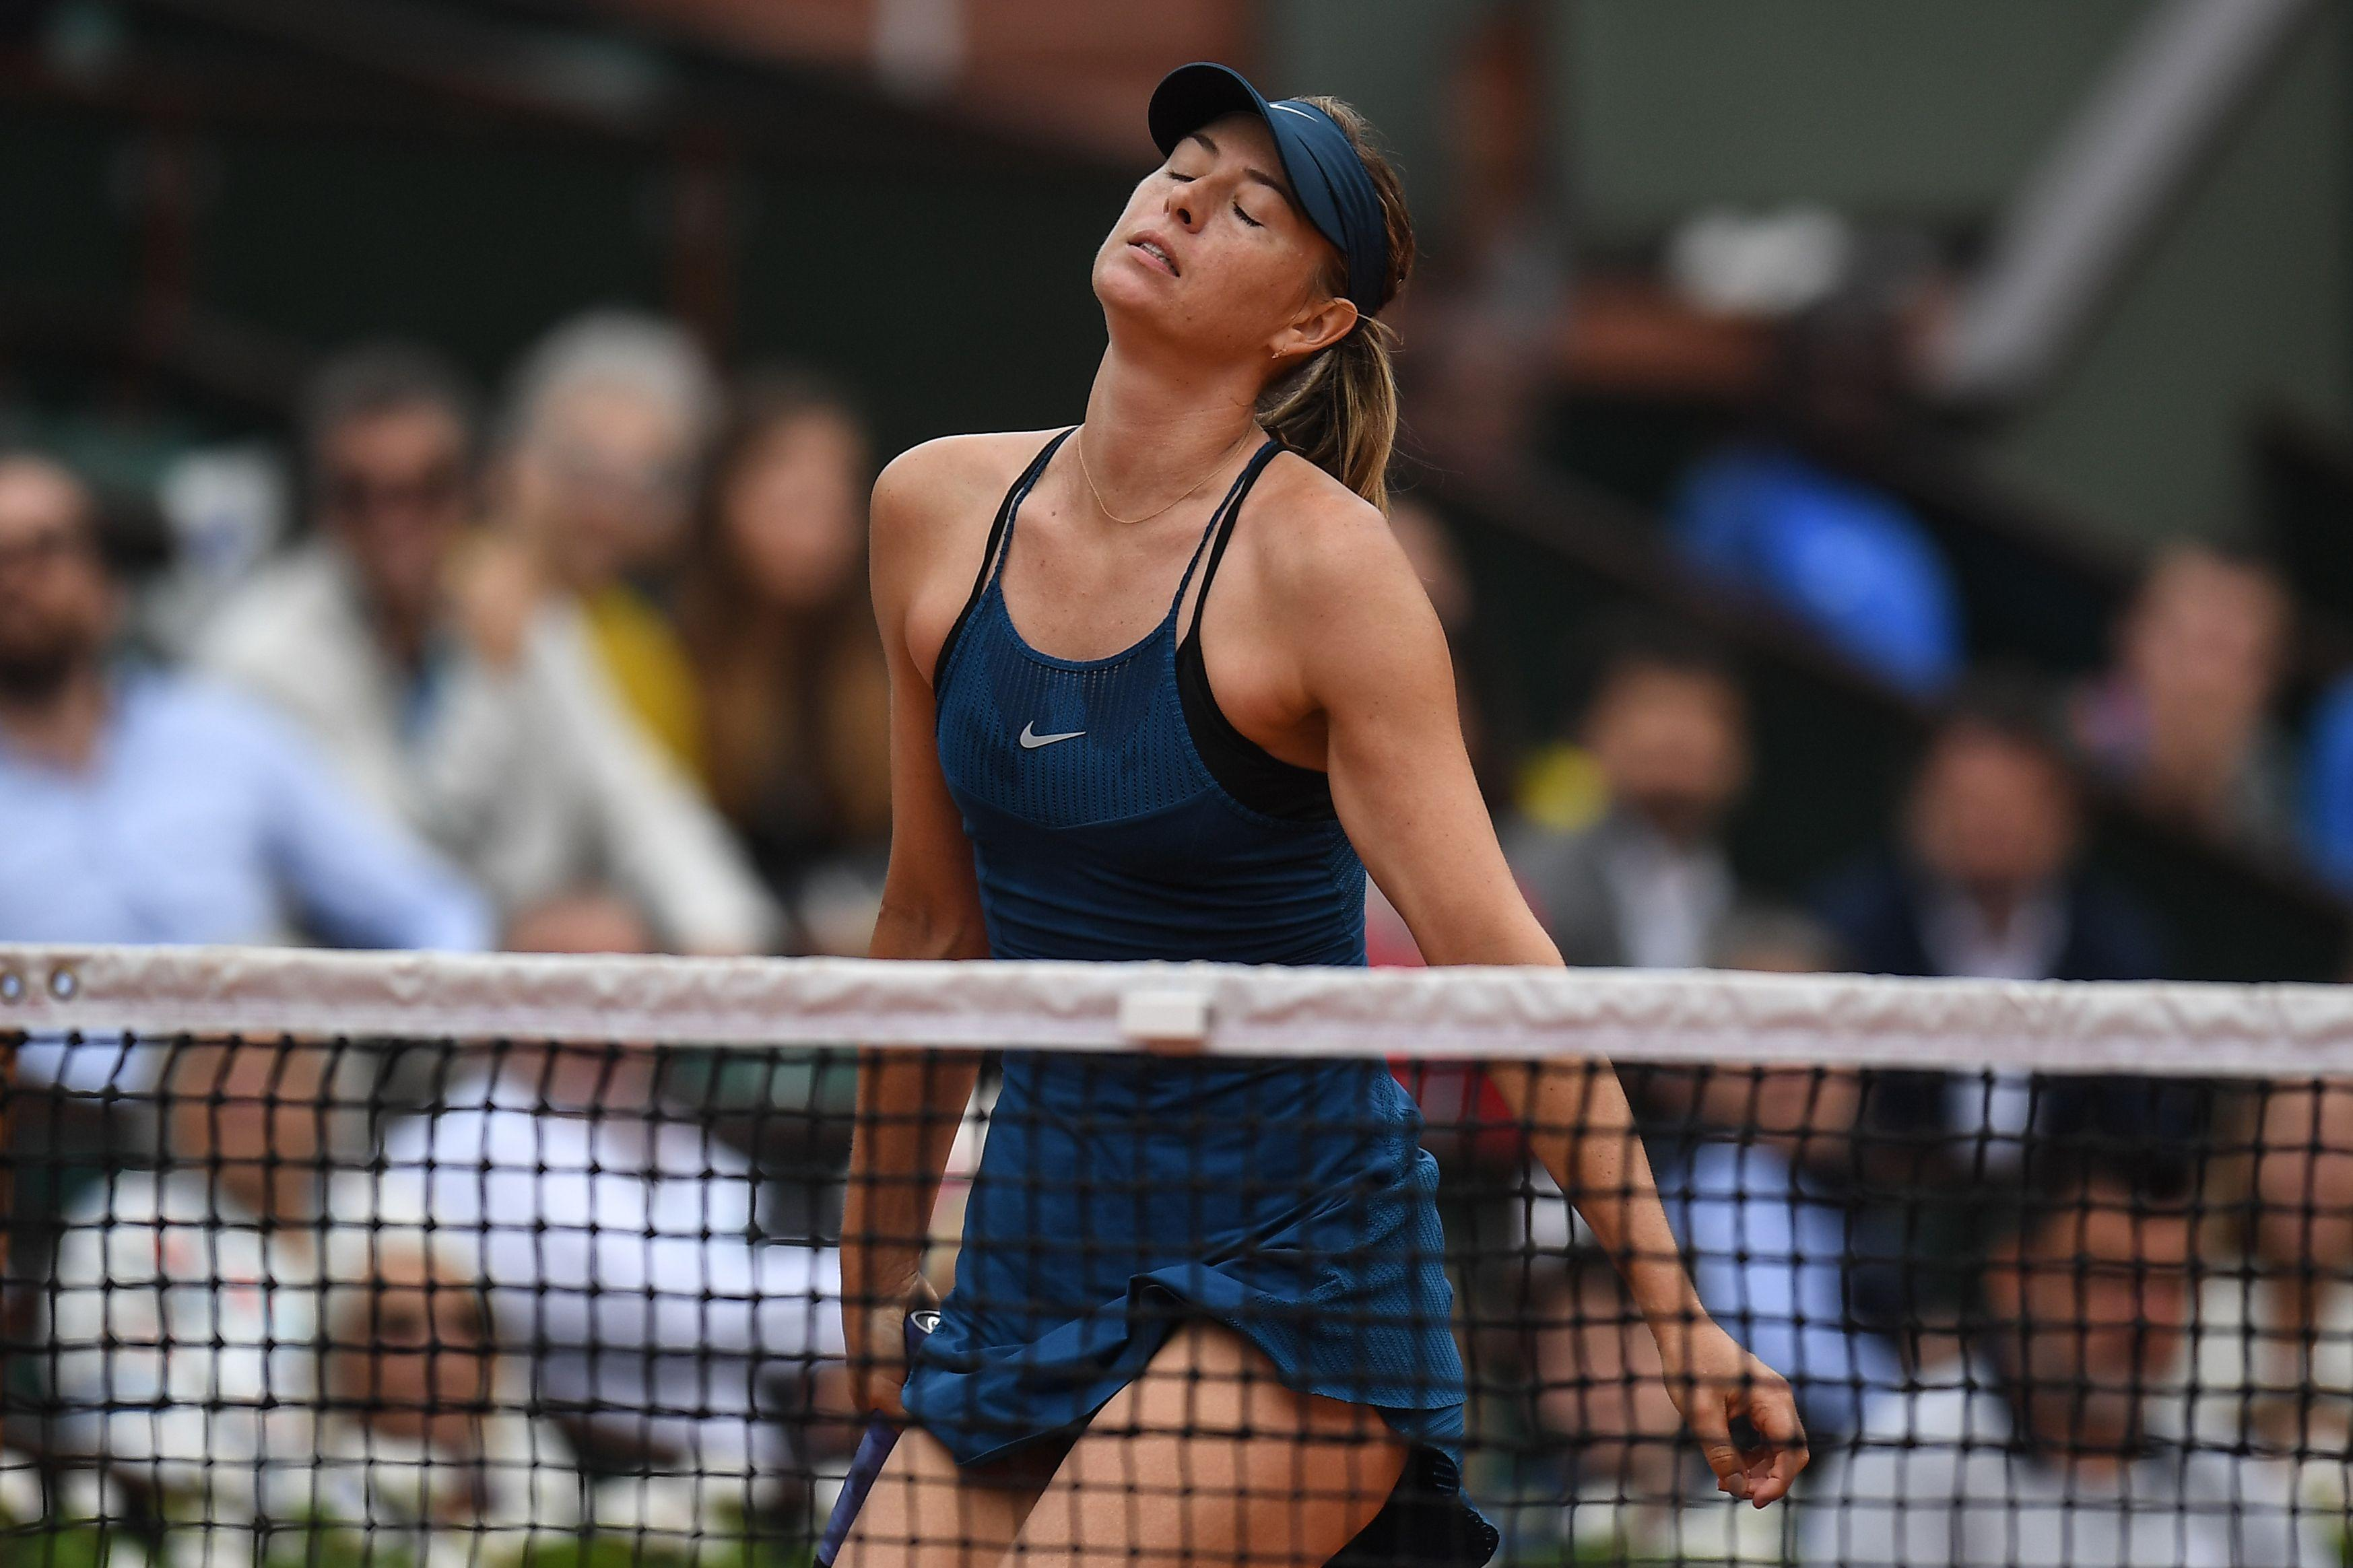 Two-time French open winner Sharapova managed to win only three games